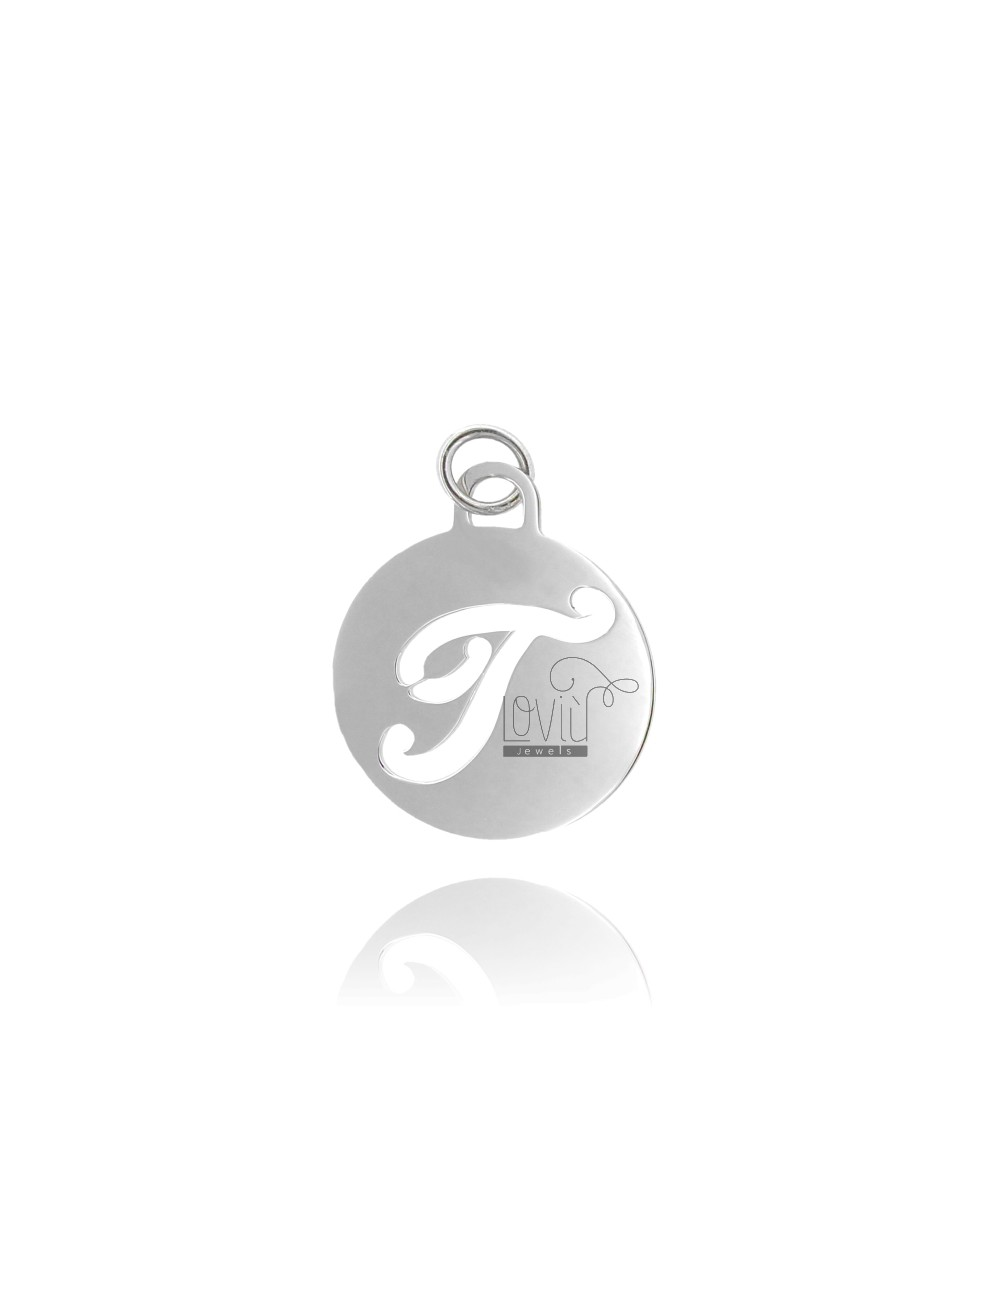 PENDANT ROUND 32 MM WITH LETTER T PERFORATED IN AG TIT 925 ‰ RHODIUM